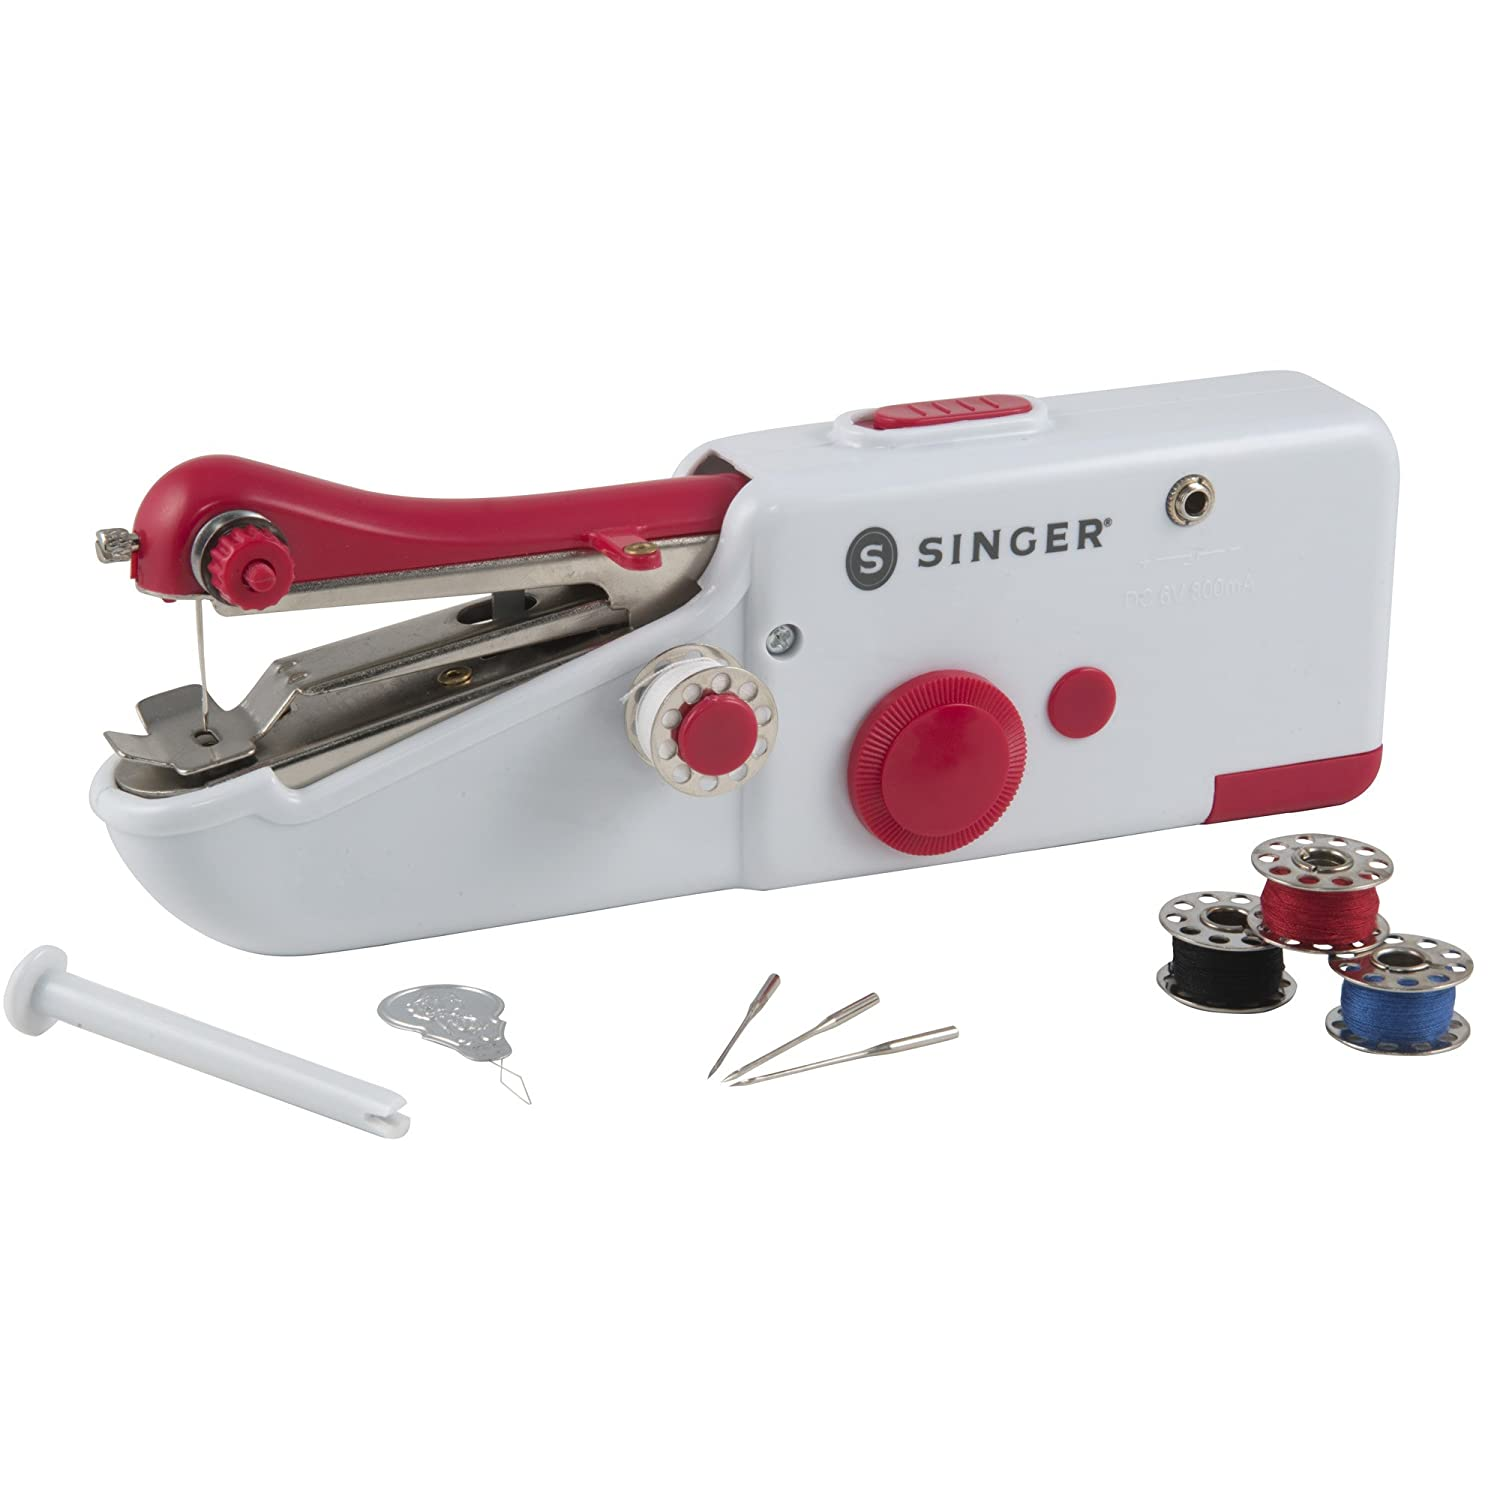 SINGER Stitch Sew Quick, Portable Sewing Repair Kit for Quick Repairs Only 01663